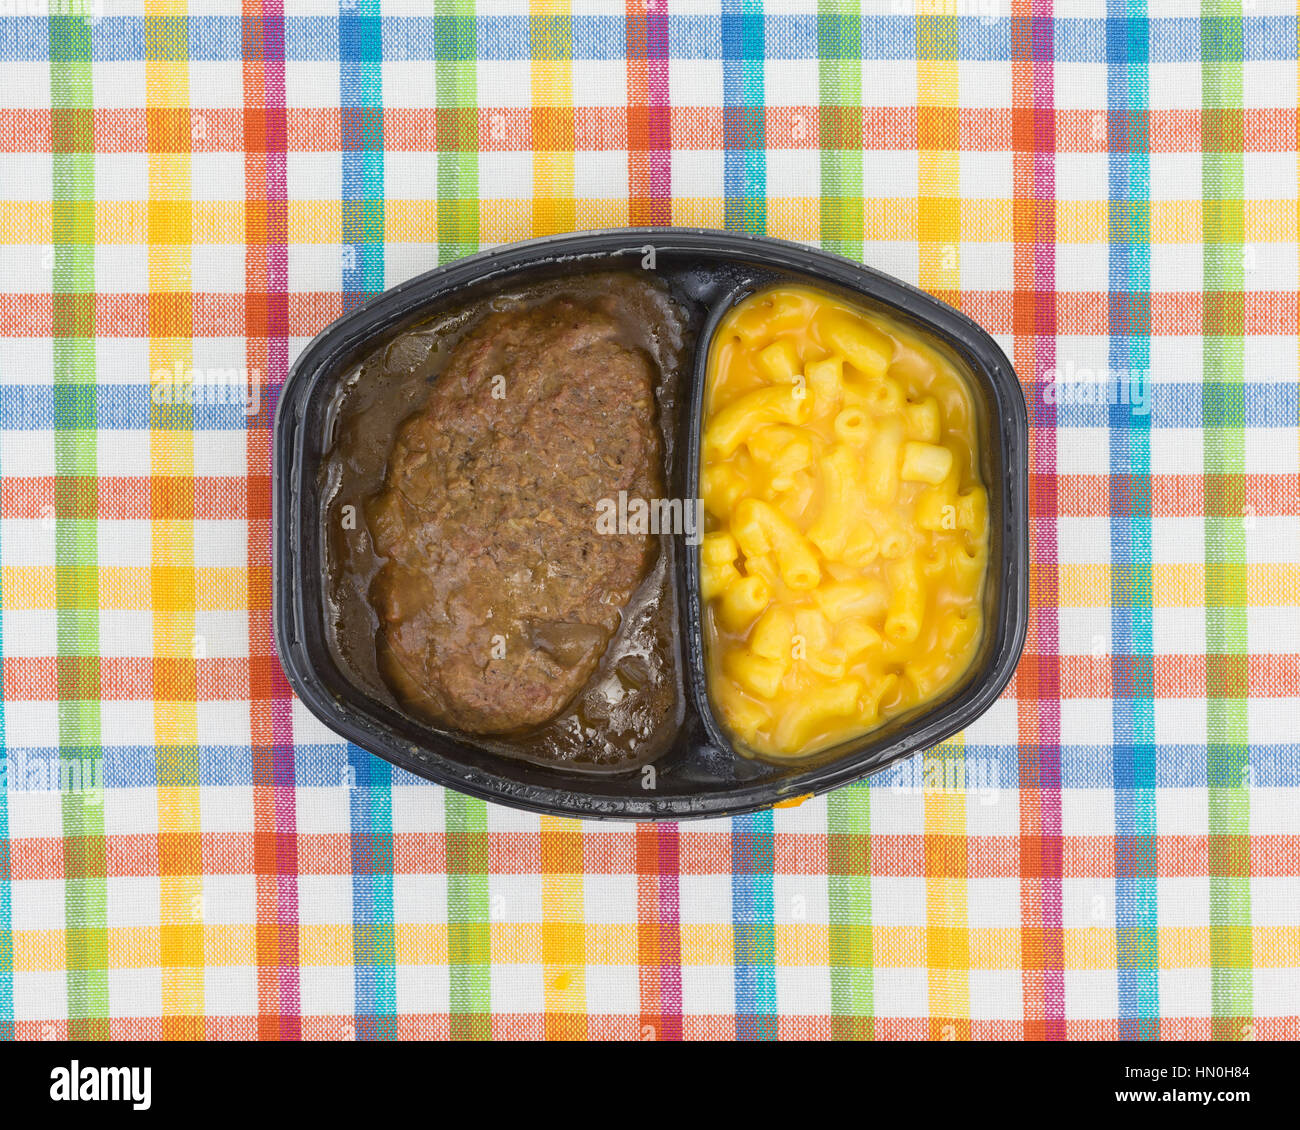 Top view of a TV dinner meal of salisbury steak with gravy macaroni and cheese in a black tray on a colorful place - Stock Image